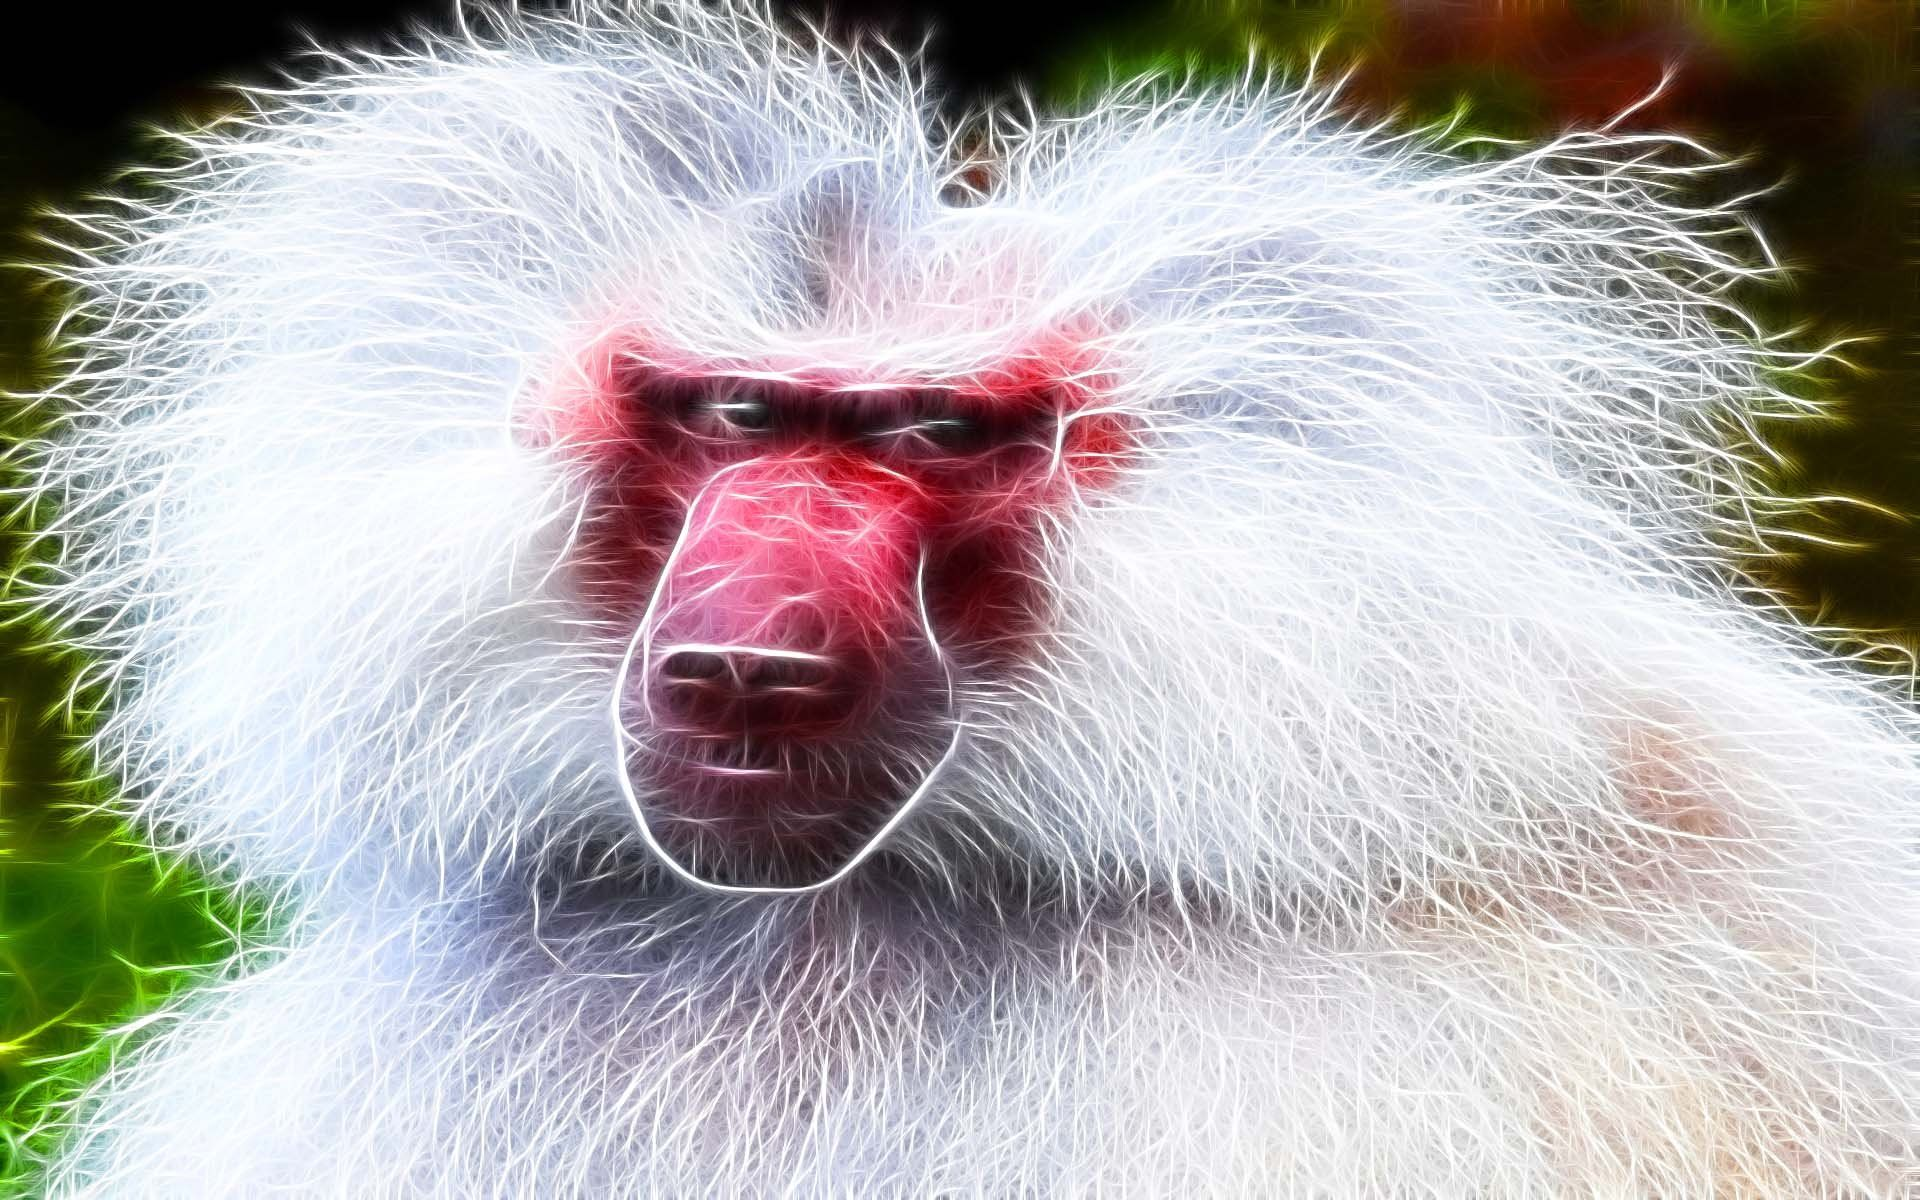 Baboon HD Wallpapers | WallpapersIn4k.net